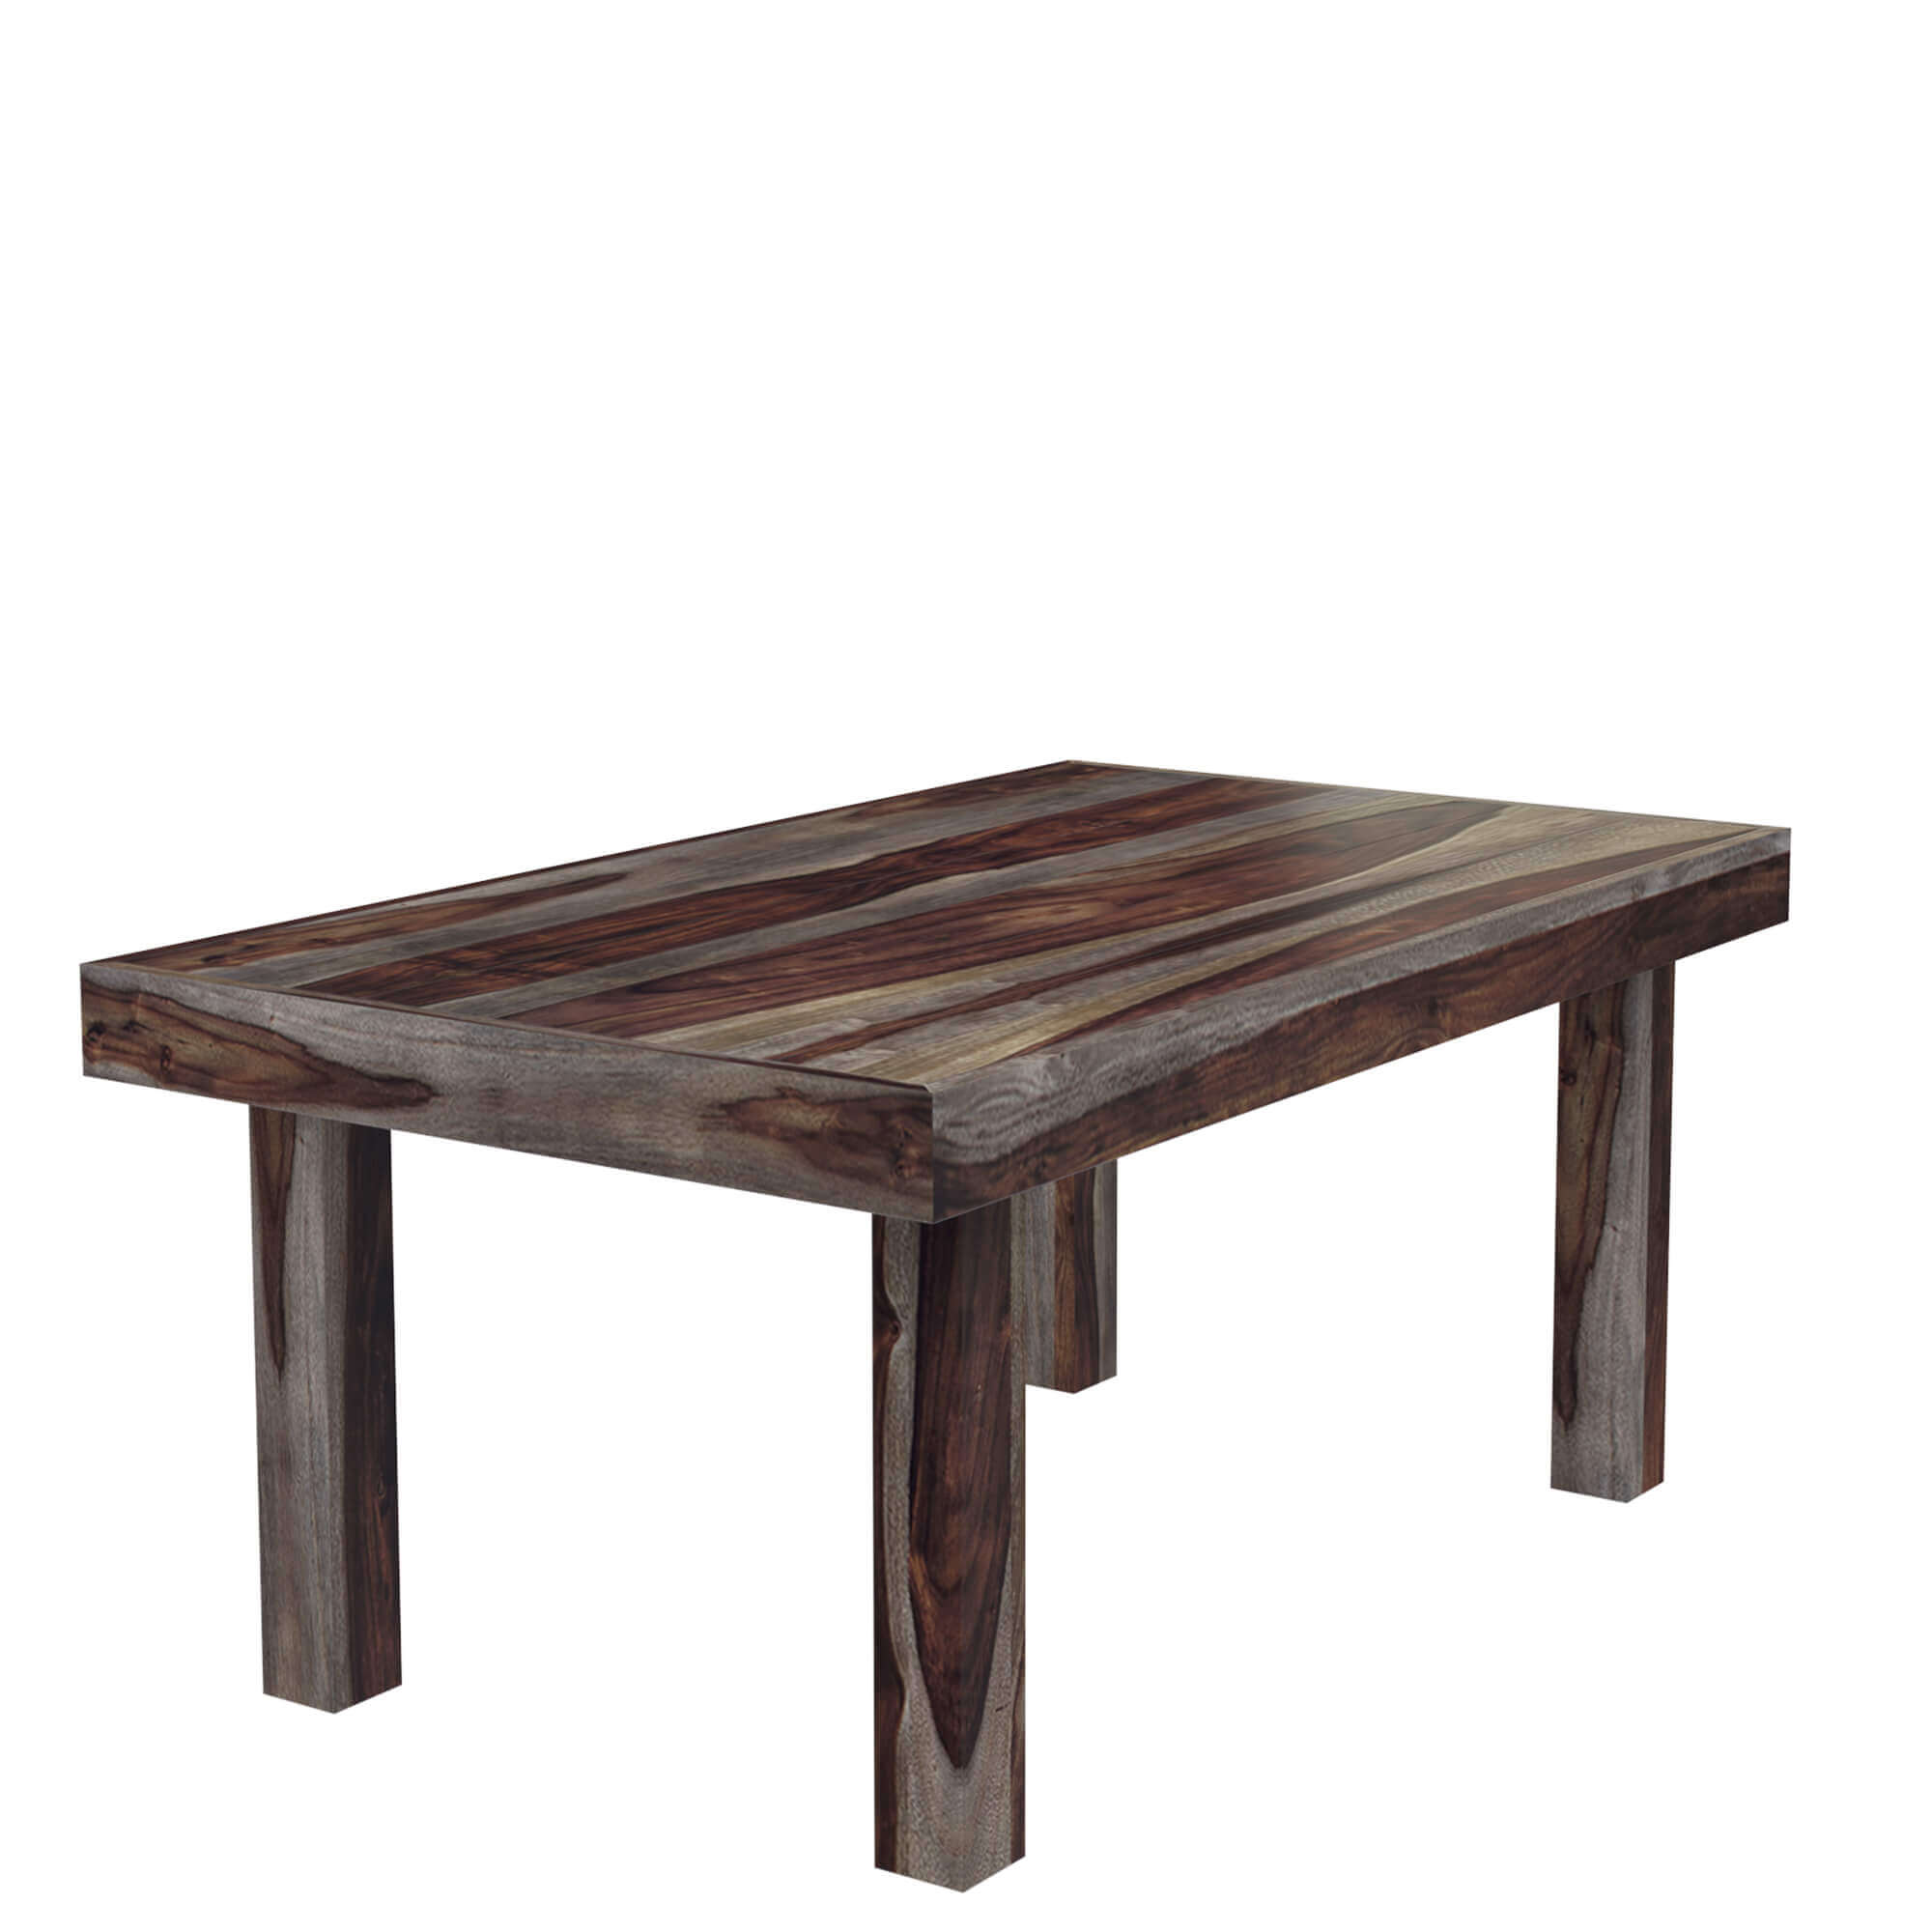 Frisco modern solid wood rectangular rustic dining room table for Dinner table wood